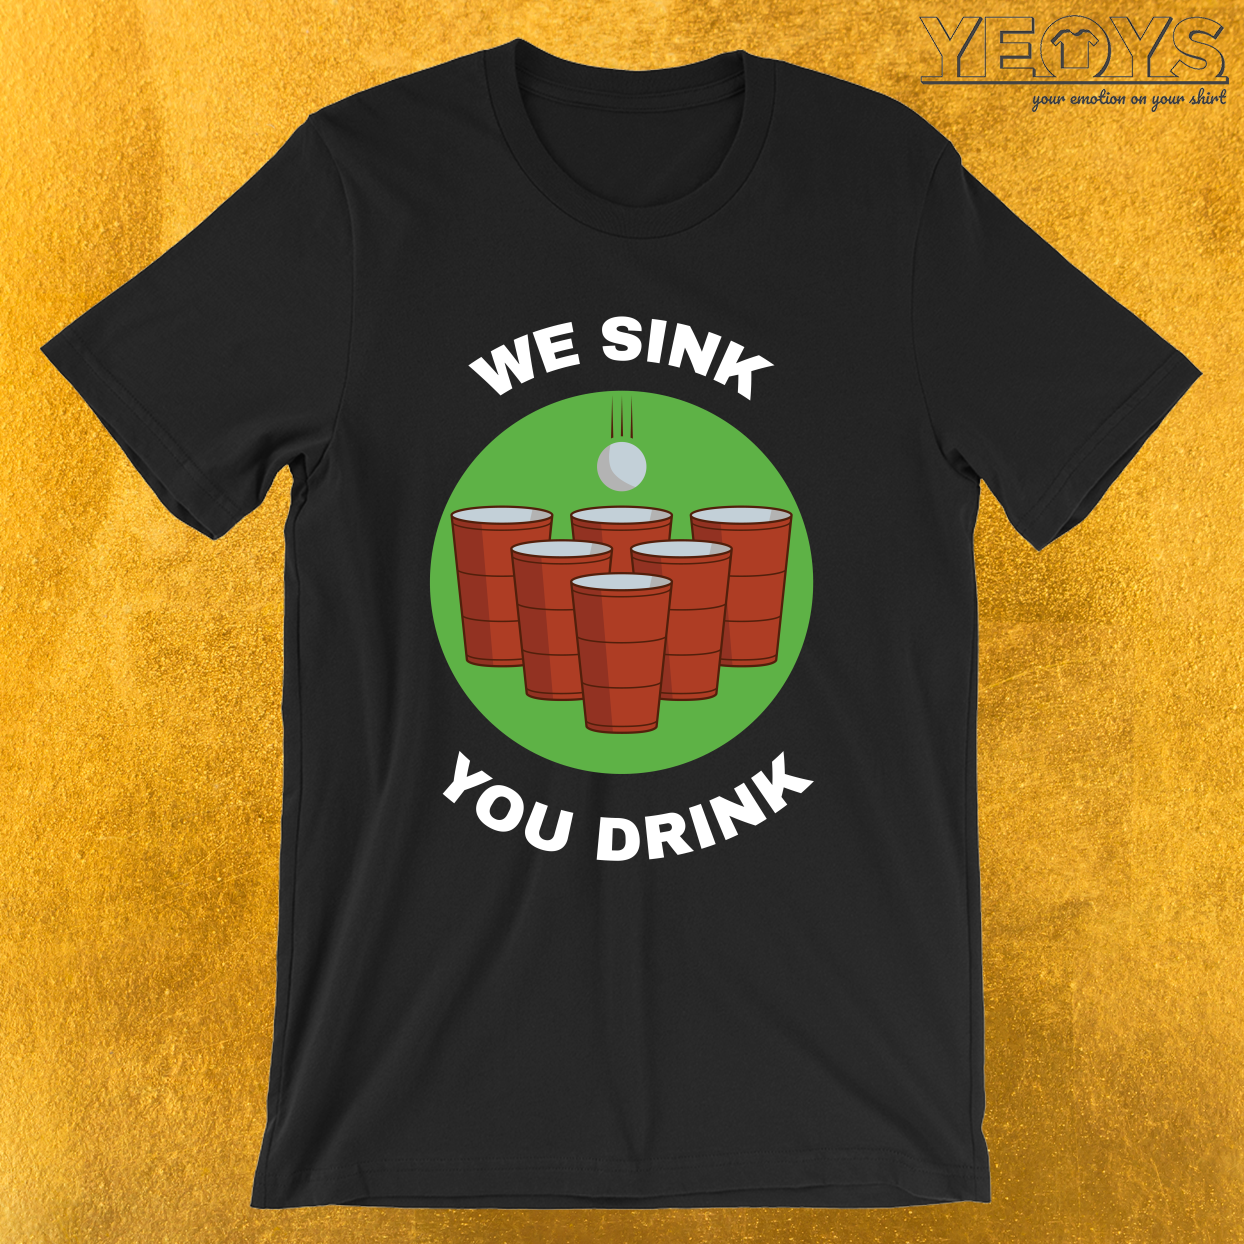 We Sink You Drink – Funny Beer Pong Tee